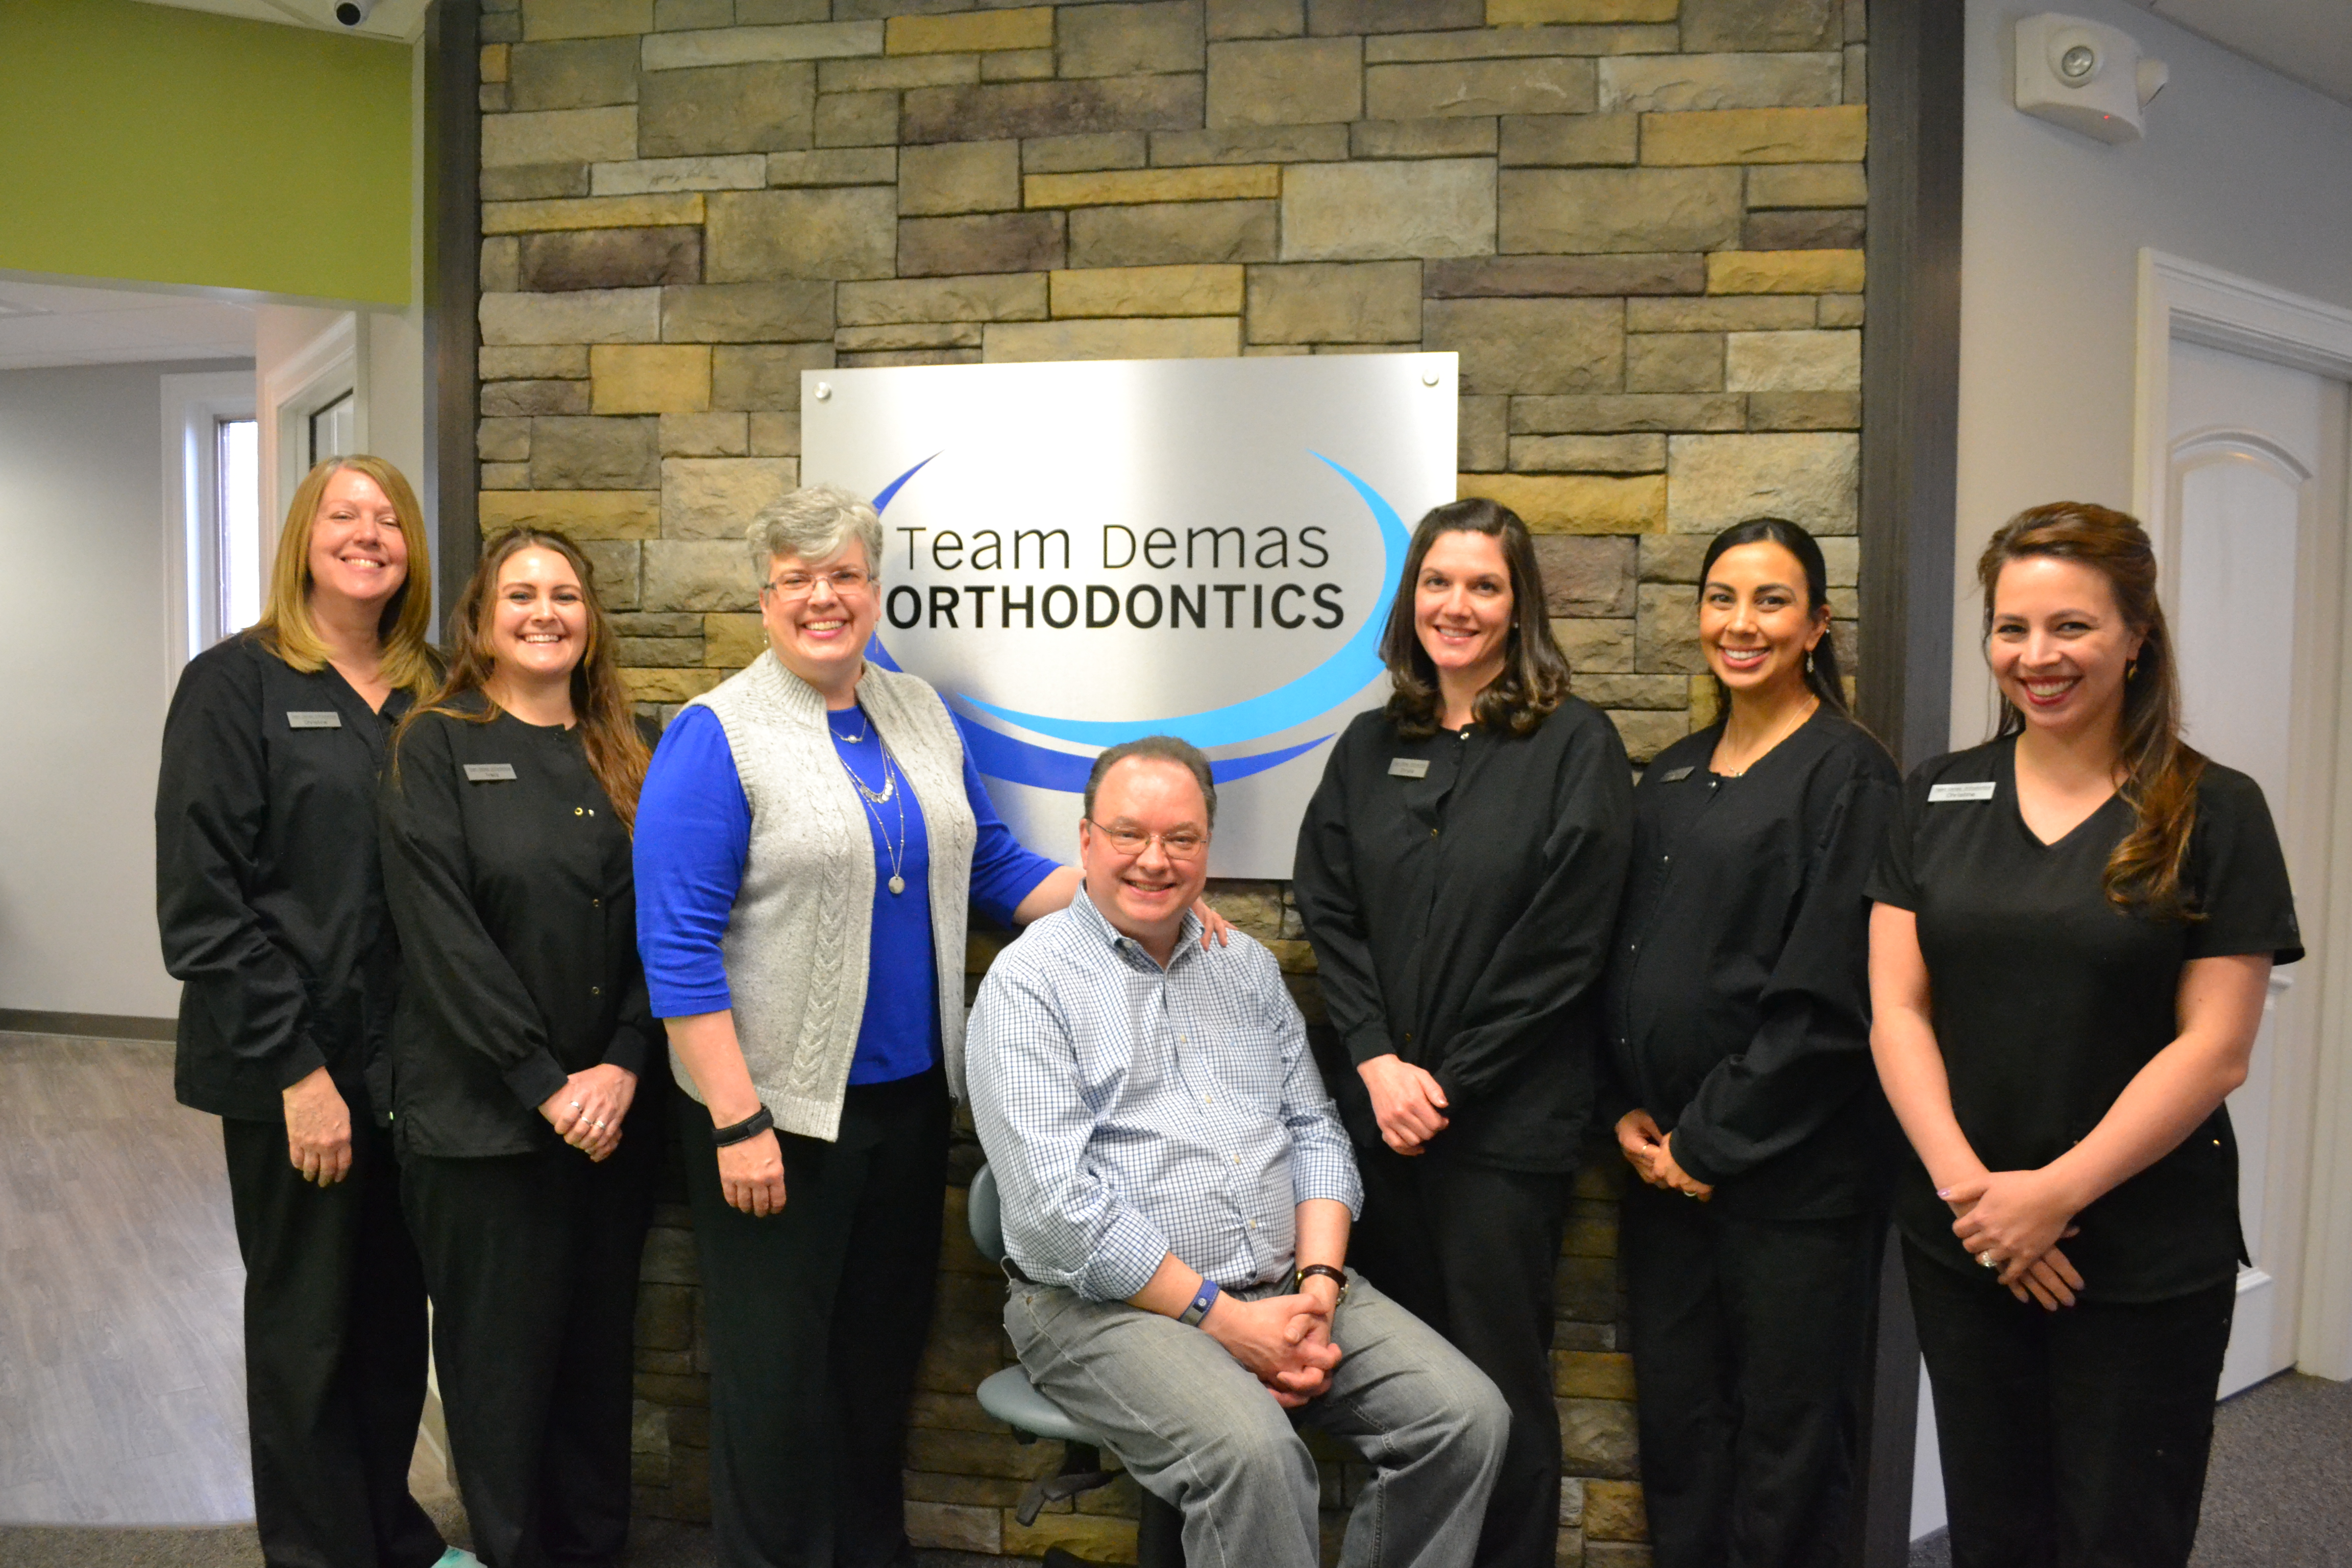 Team Demas Orthodontics | Orthodontists at 27 Meriden Ave - Southington CT - Reviews - Photos - Phone Number